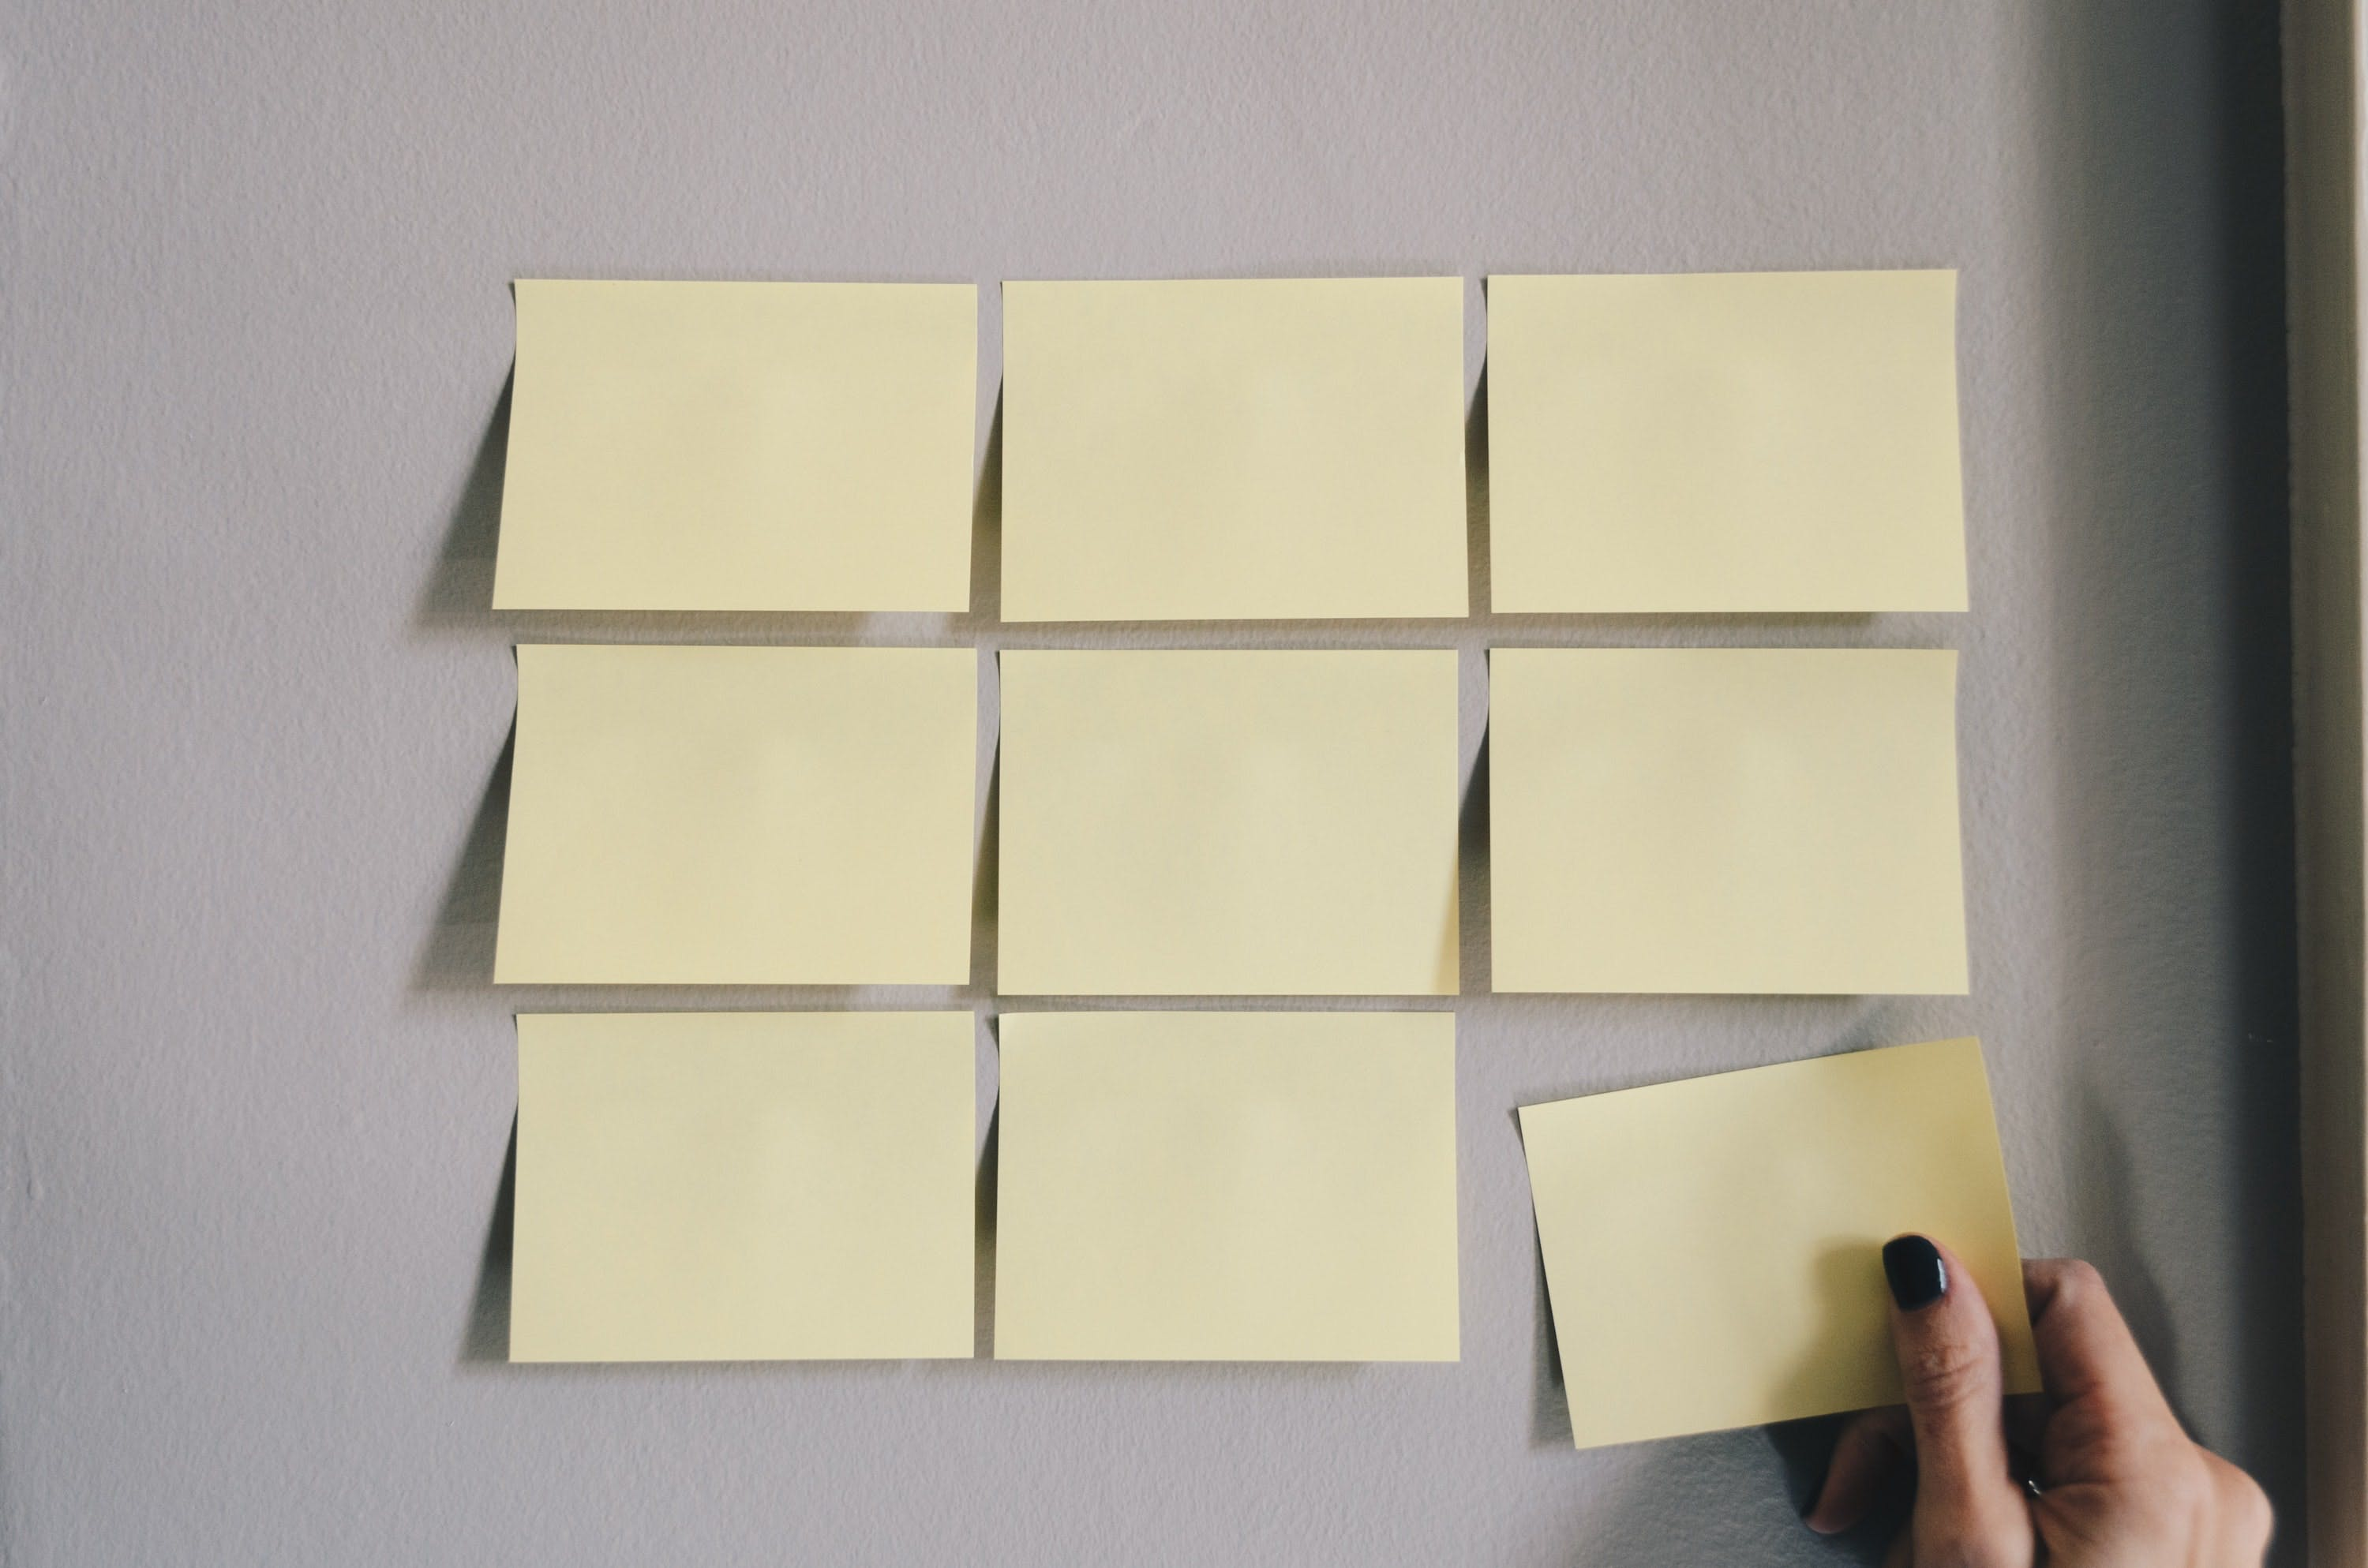 Grid of blank sticky notes with woman's hand adding final sticky note to the bottom row.